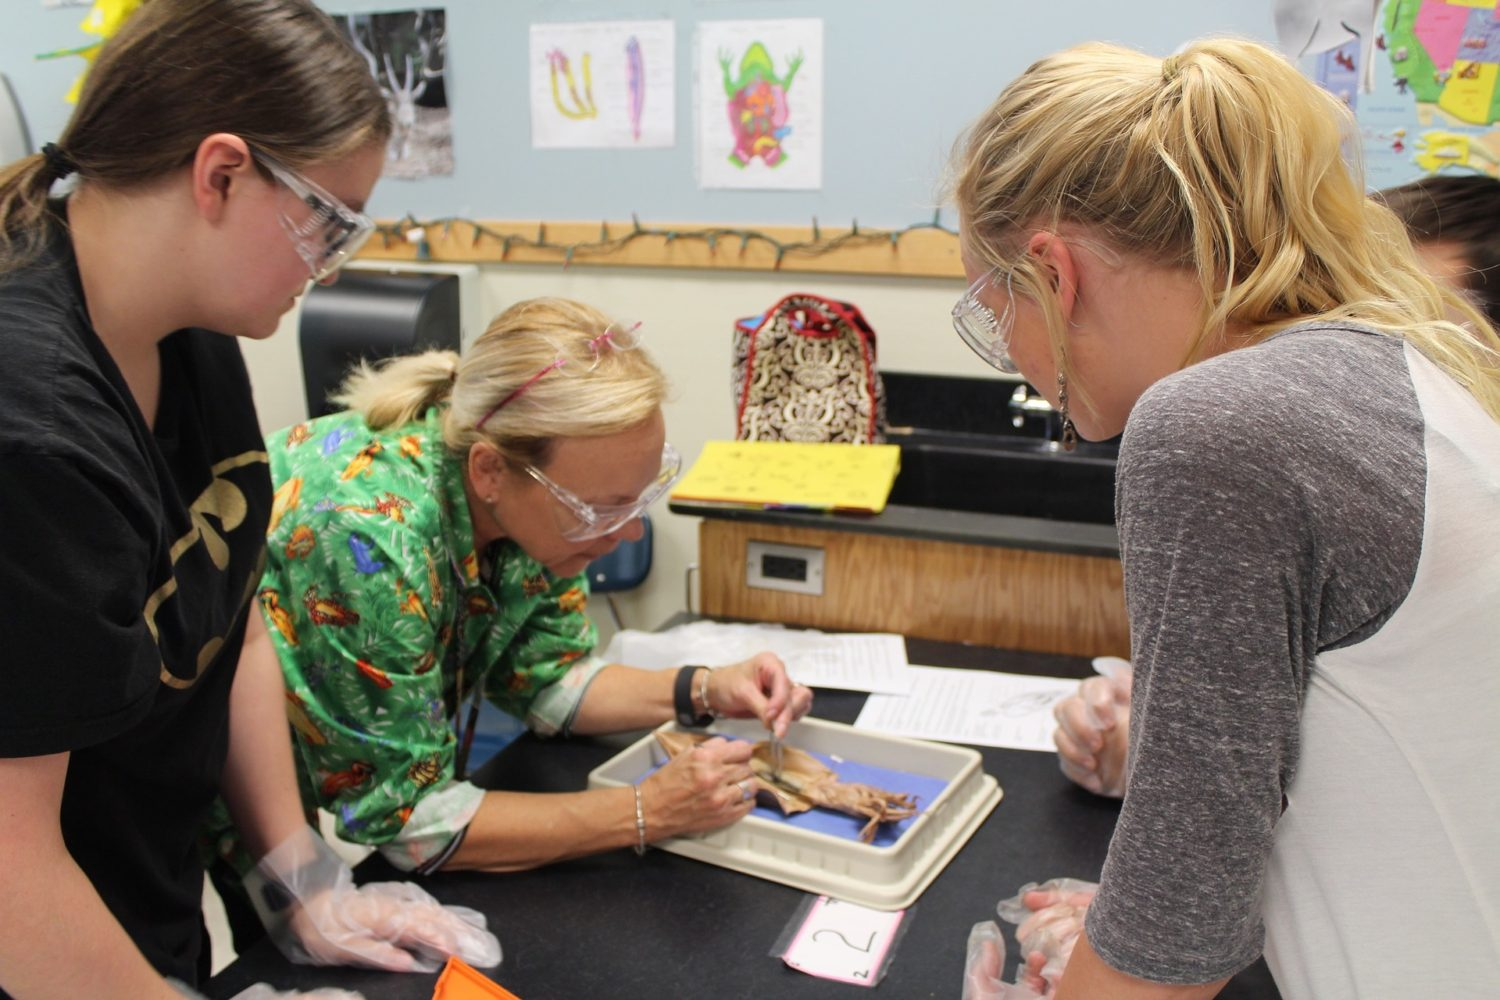 Two students watch a science teacher dissecting an animal in a tray on a table in a classroom